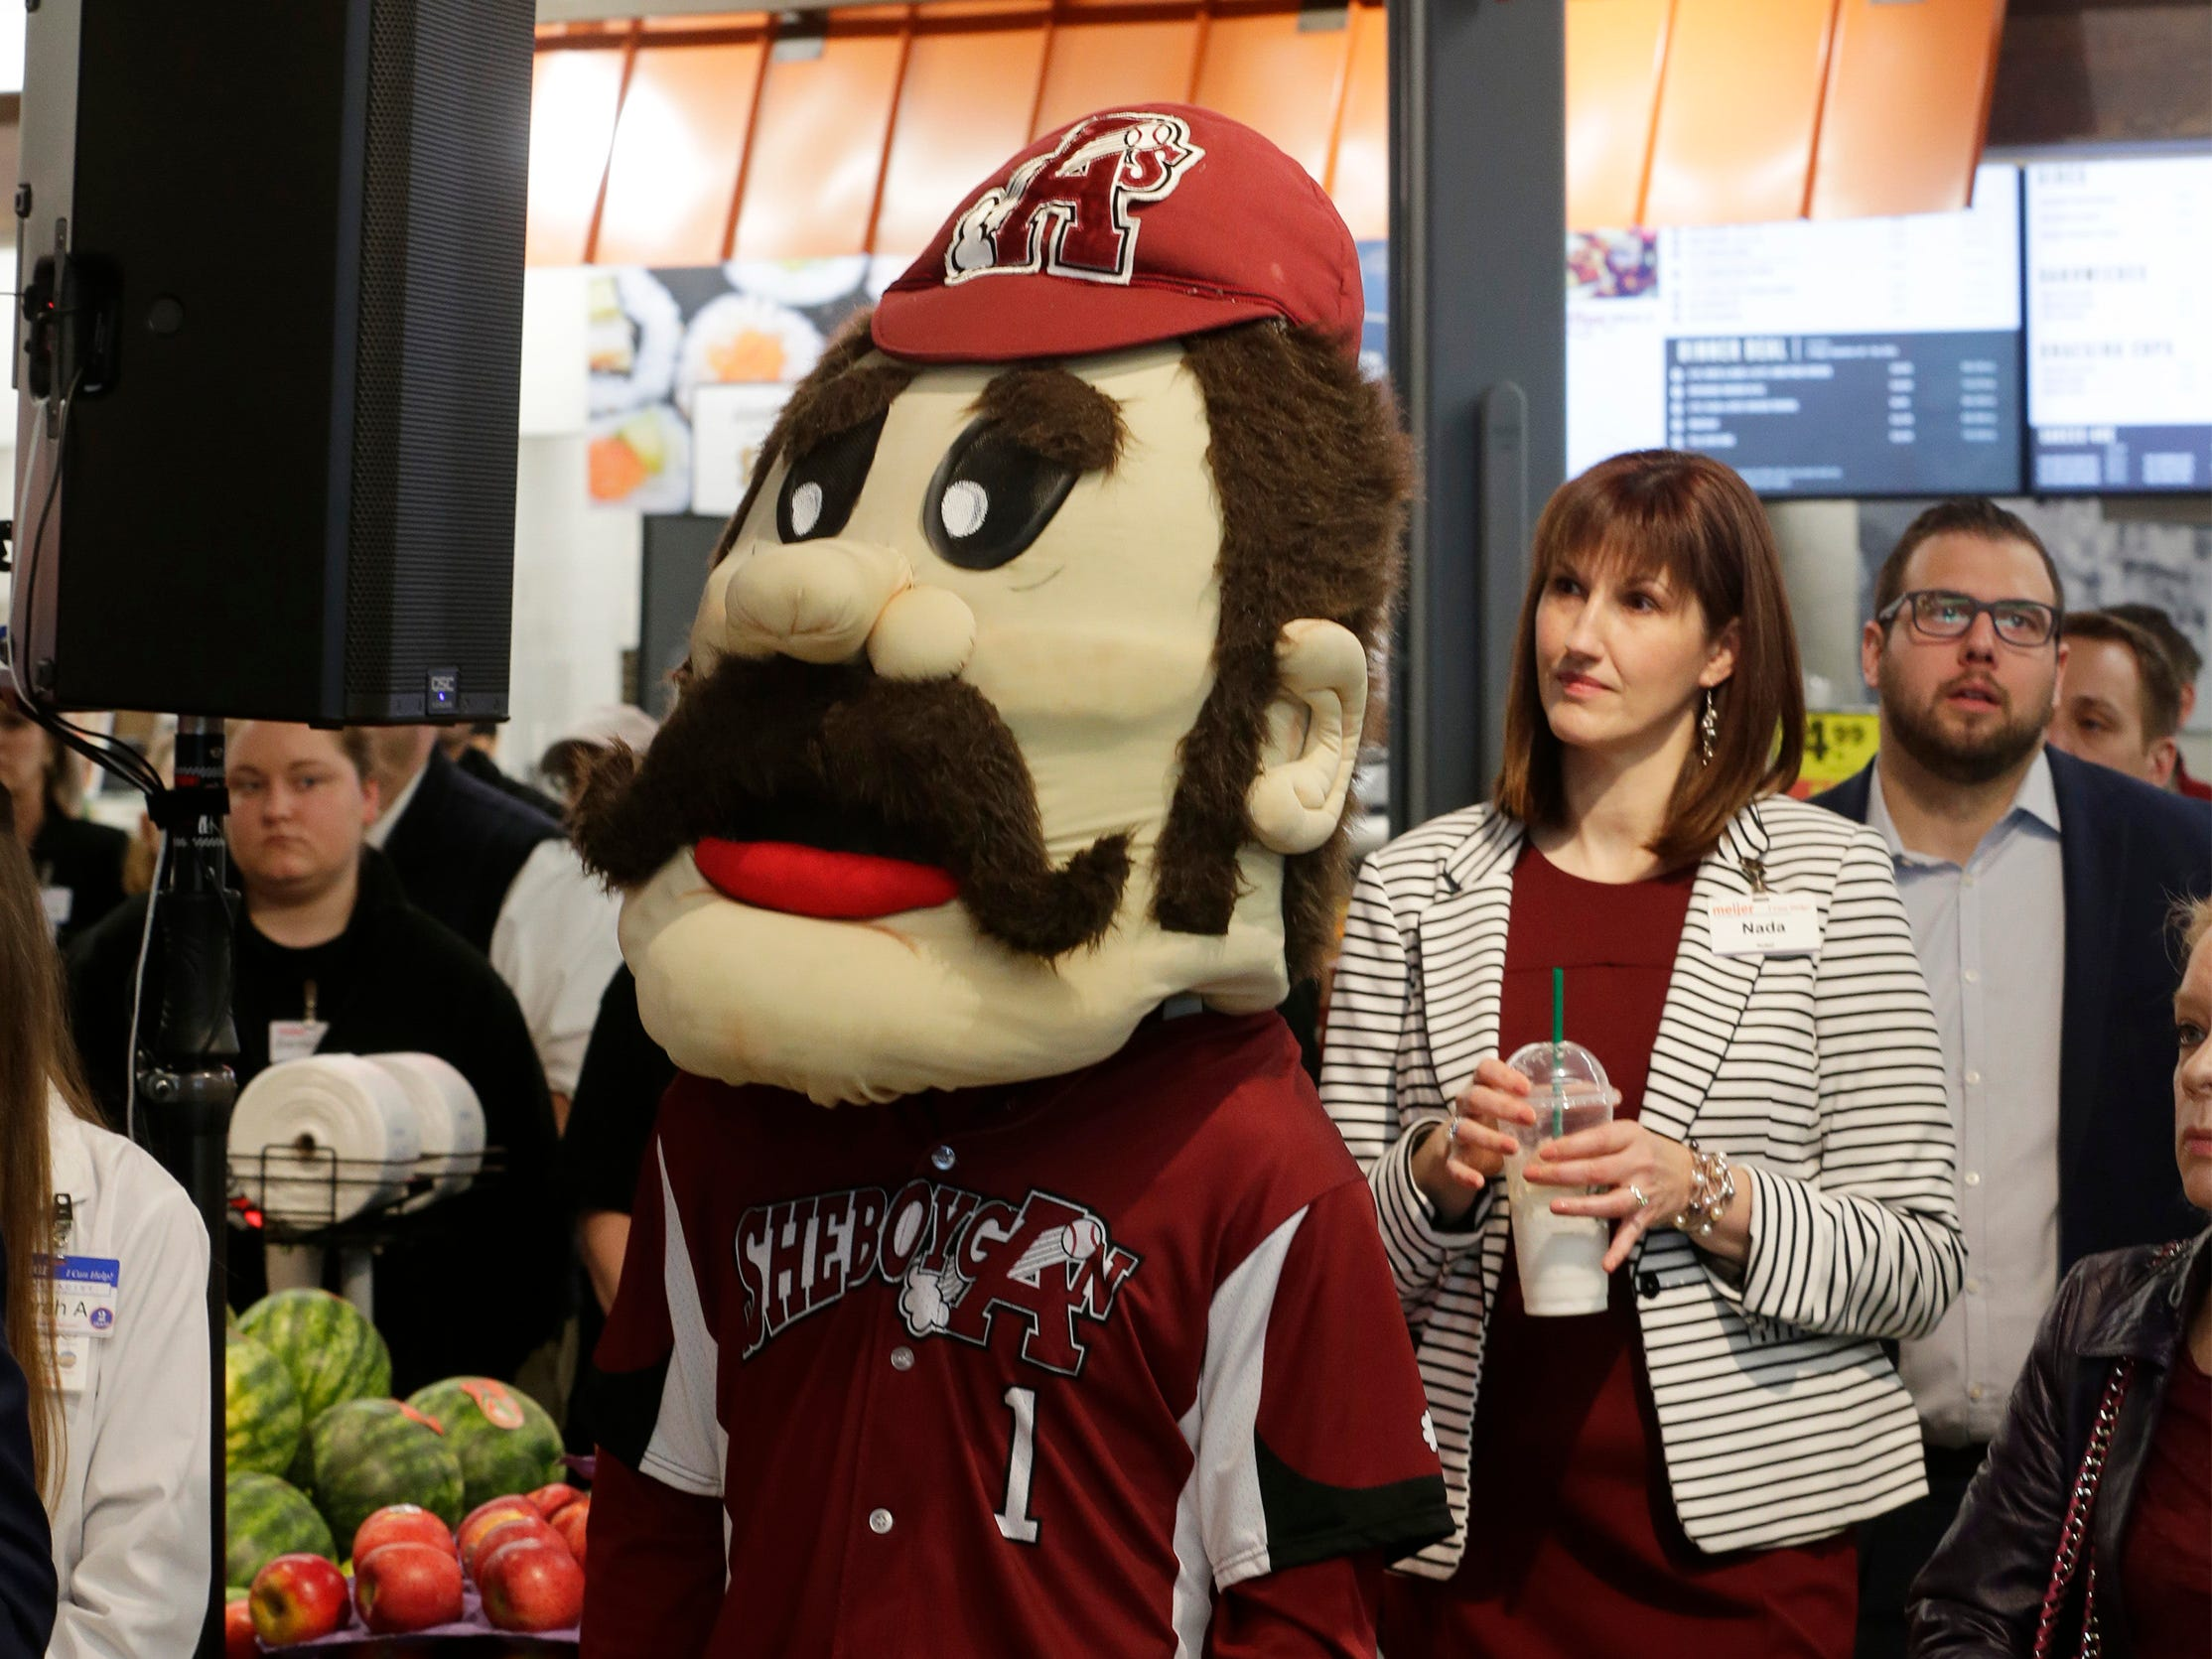 Sheboygan A's No. 1 listens to speeches during the grand opening at Meijer, Thursday April 25, 2019, in Sheboygan, Wis. The 155,000-square-foot supercenter has 300 employees on opening day.